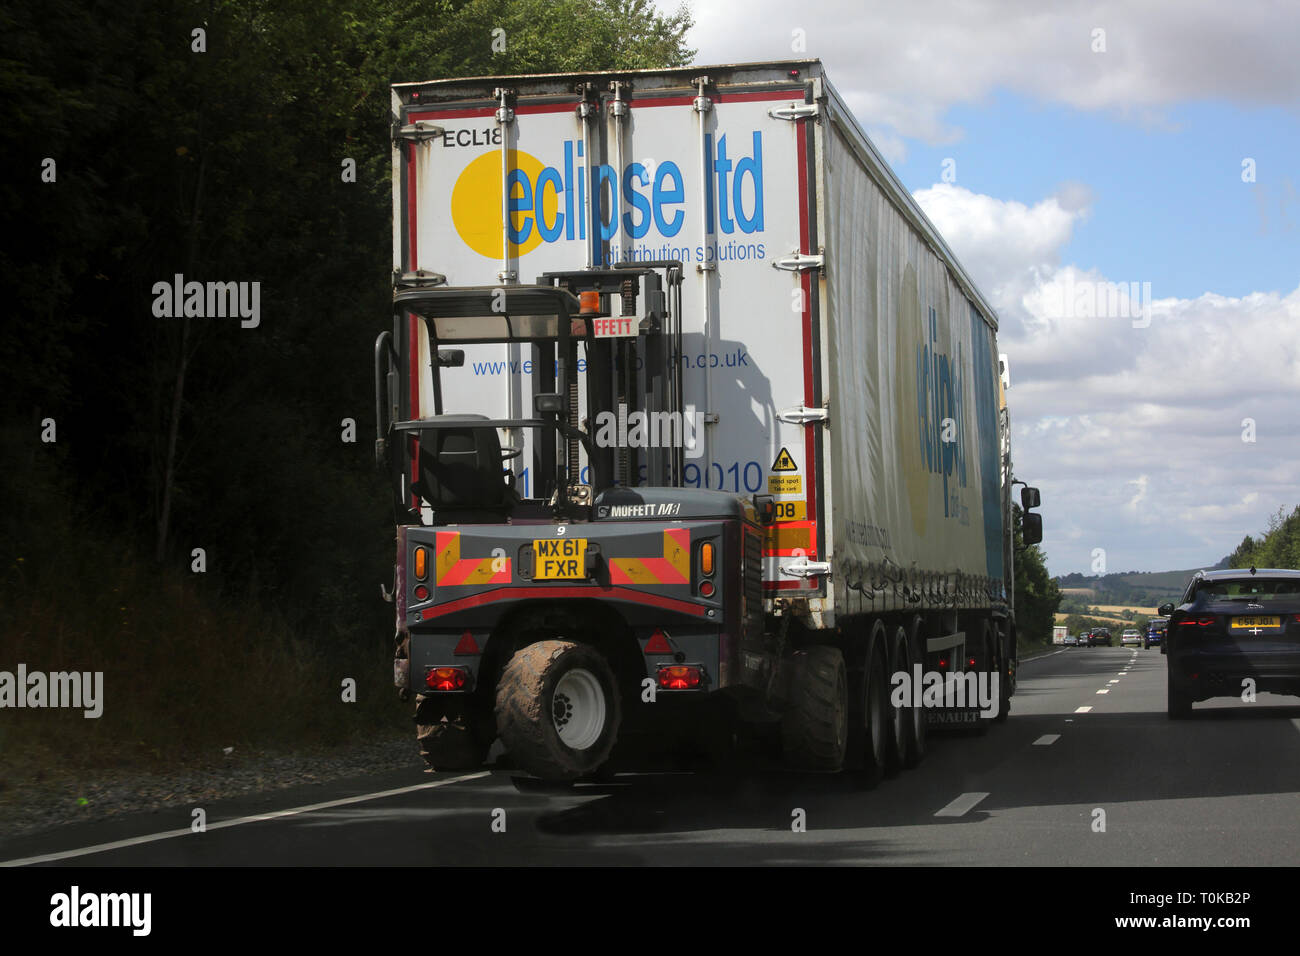 Lorry on the A303 Trunk Road England - Stock Image